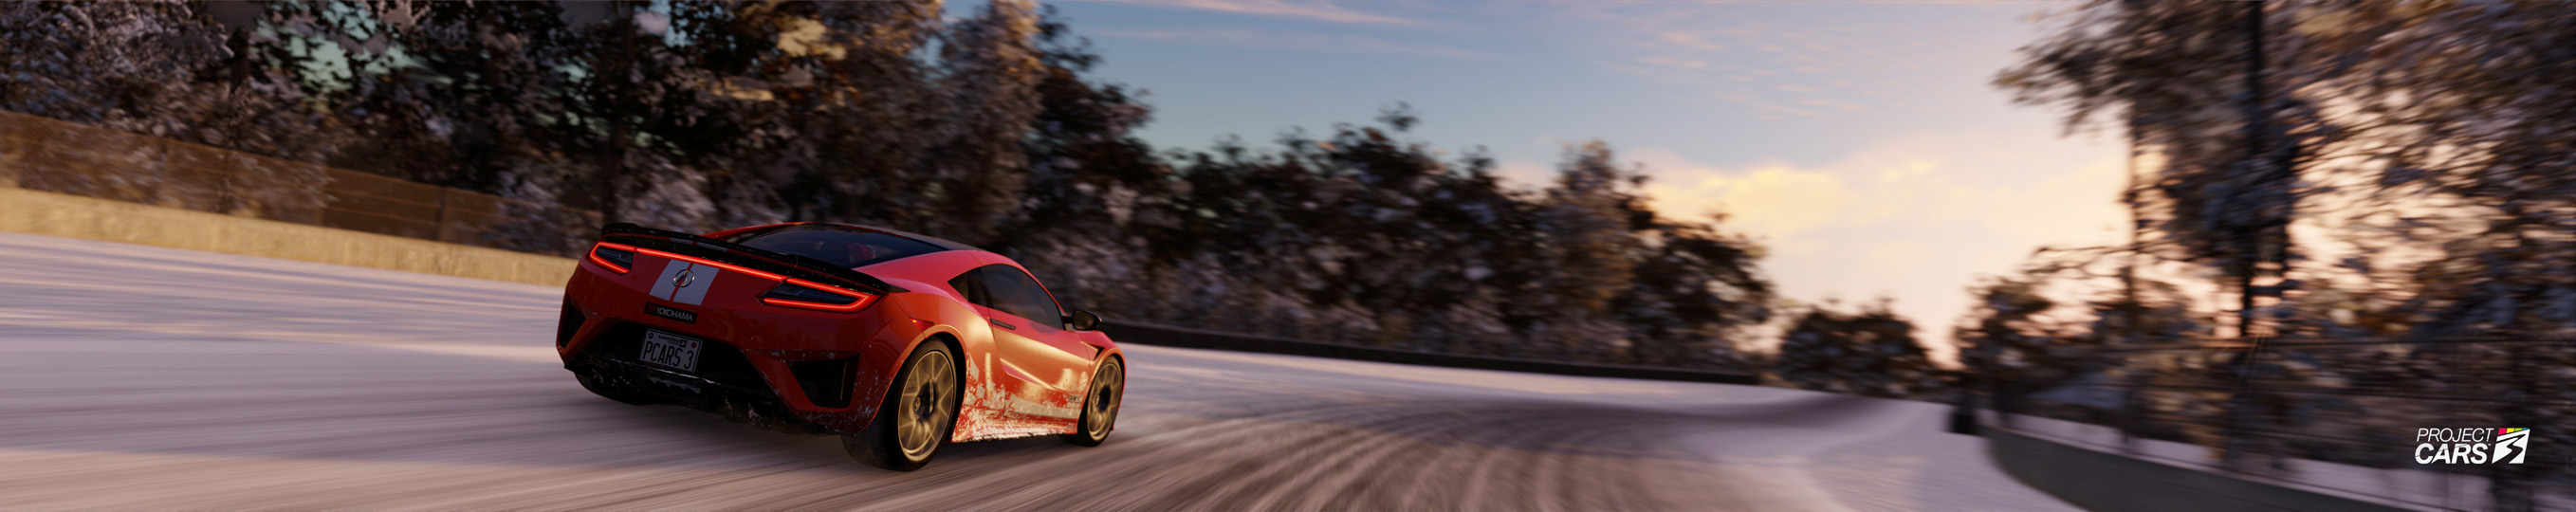 4 PROJECT CARS 3 ACURA NSX 2020 at ZOLDER Snow crop copy.jpg